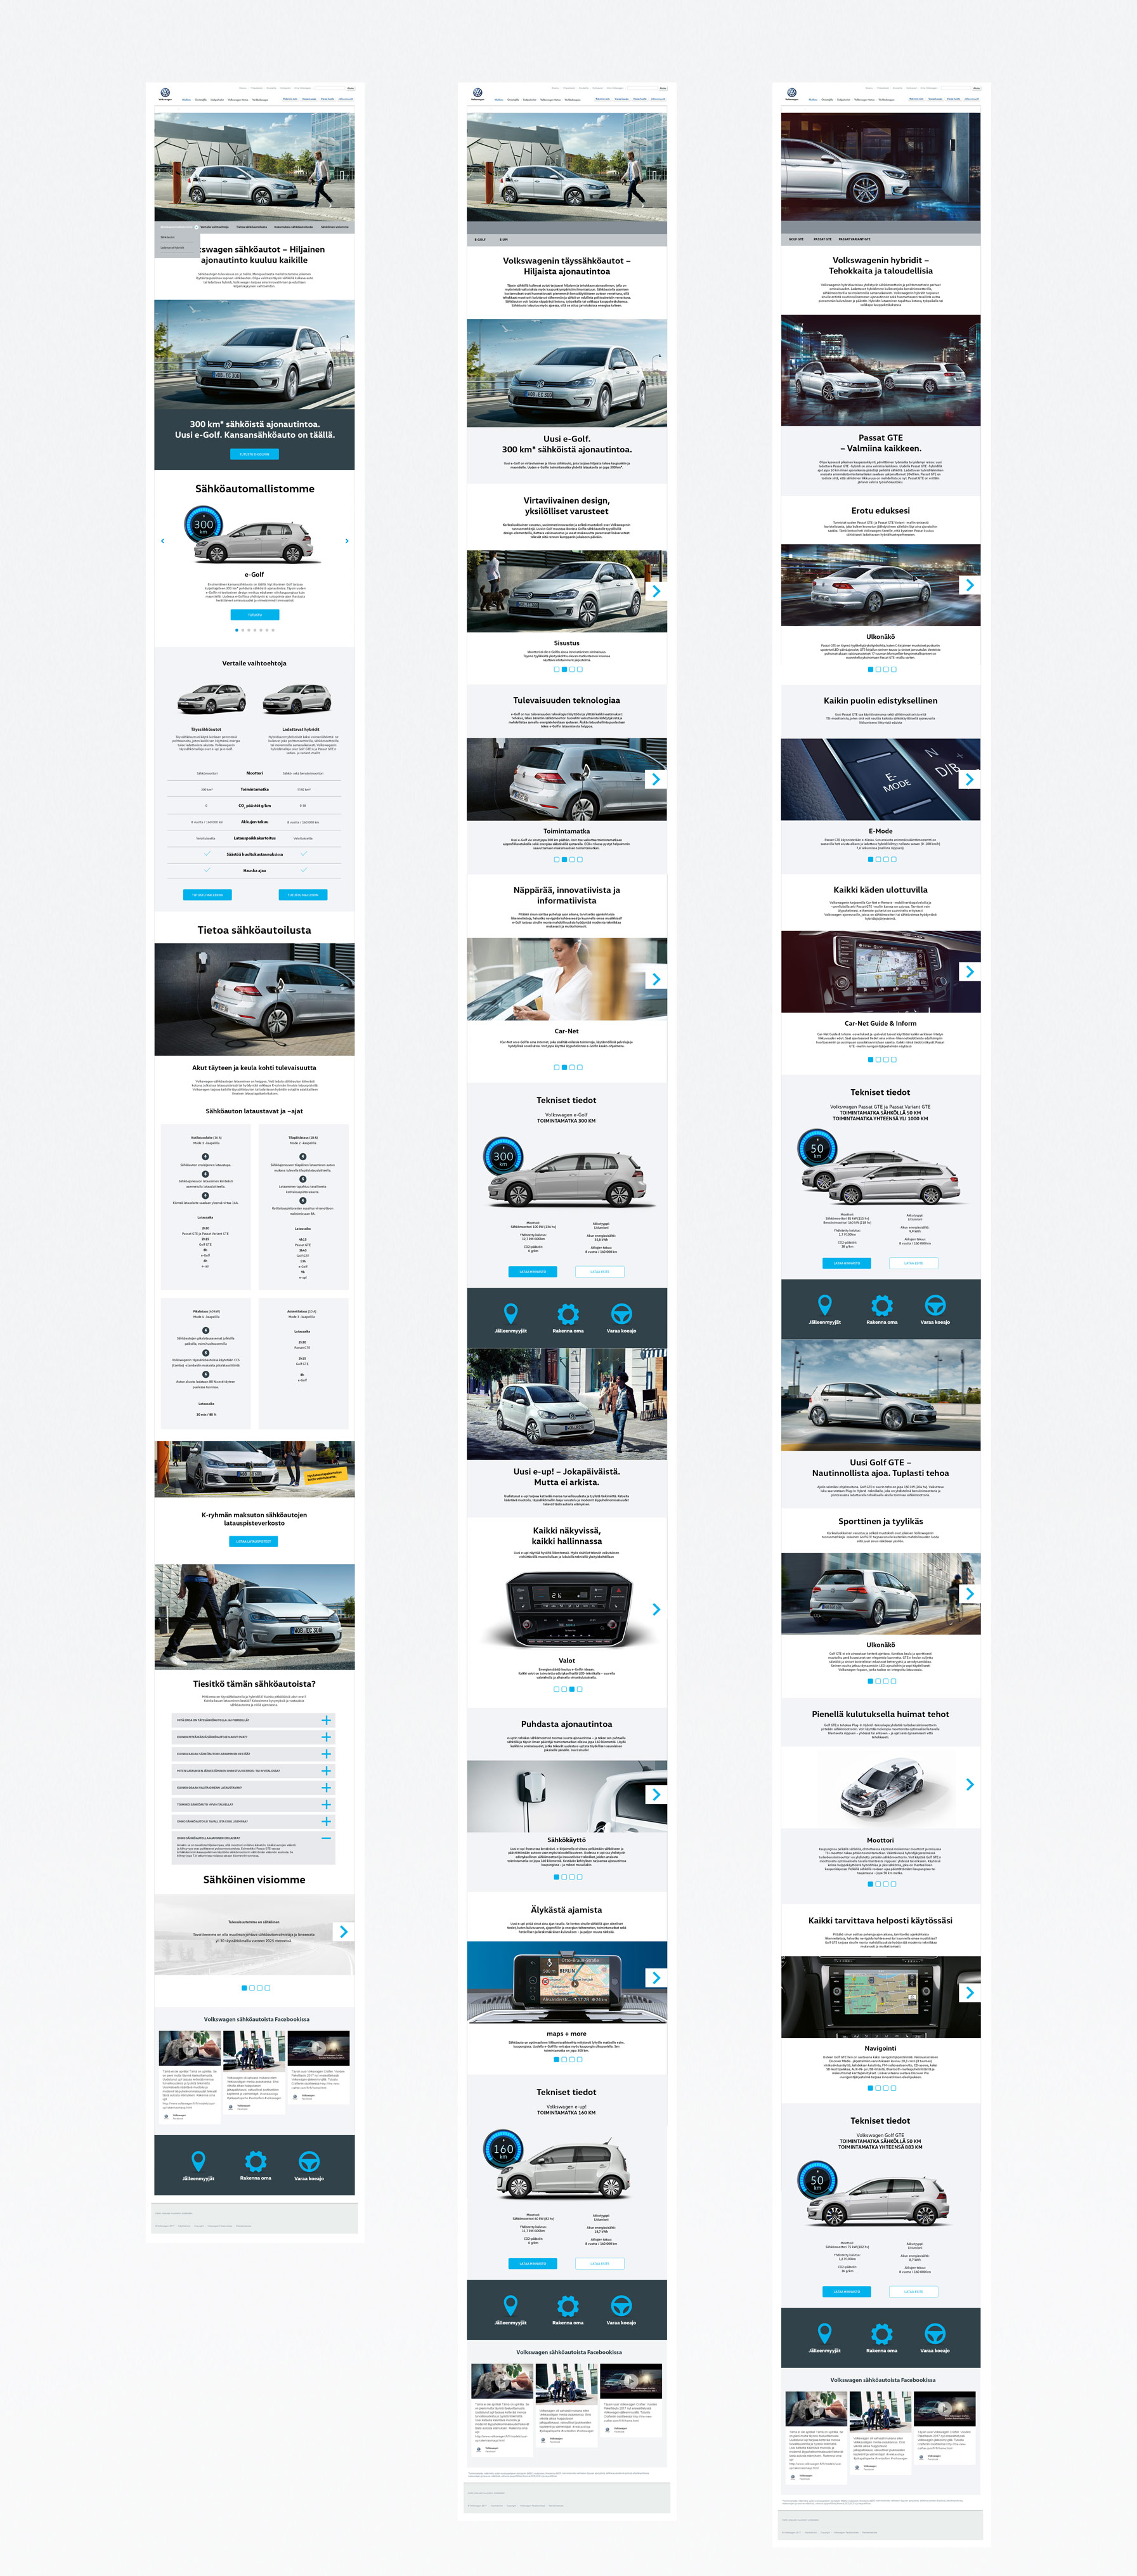 Volkswagen sähköautot website pages